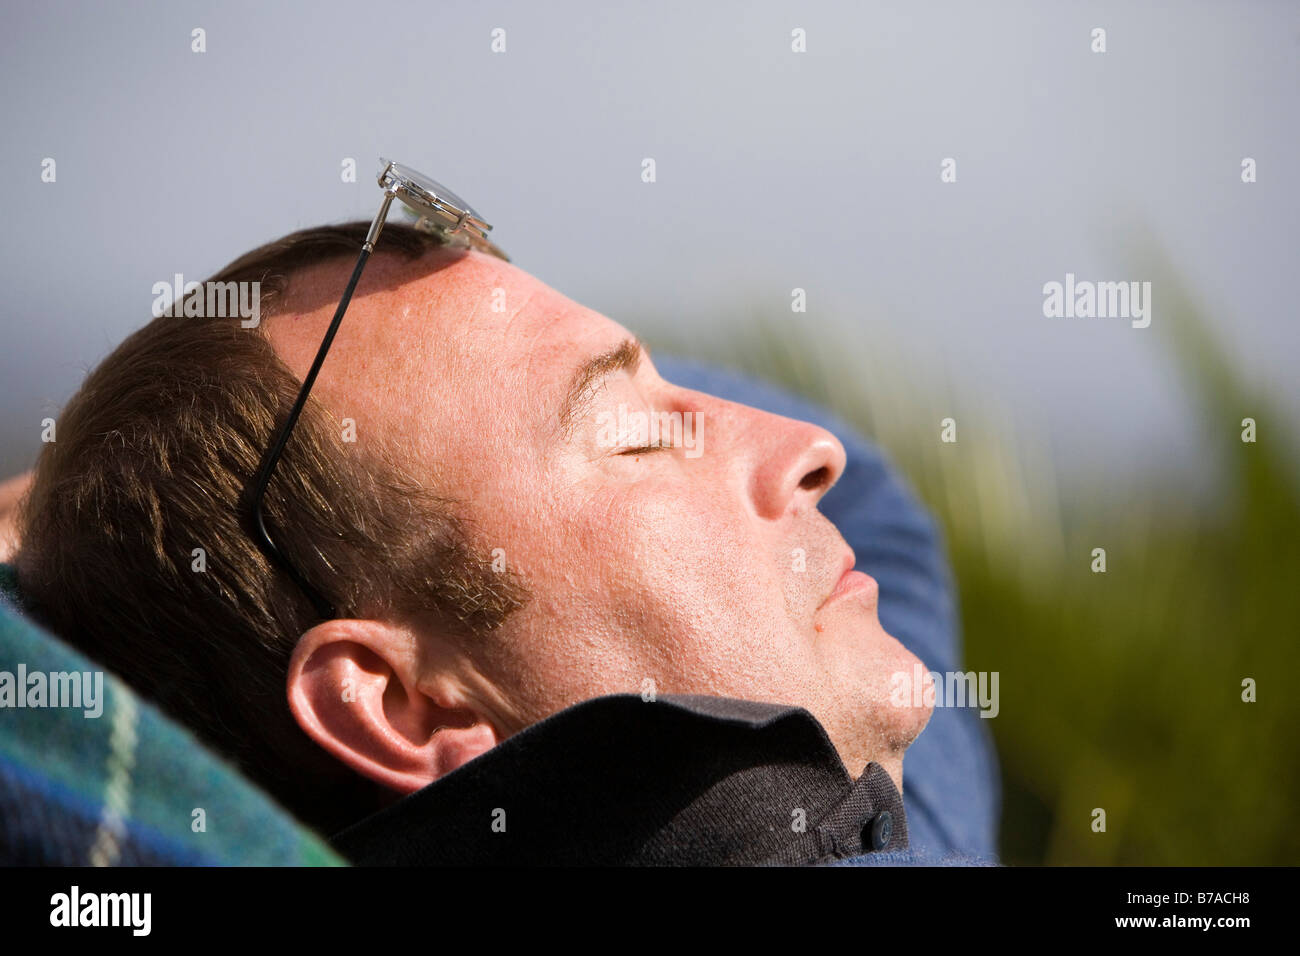 45 year old man relaxing in the sun - Stock Image